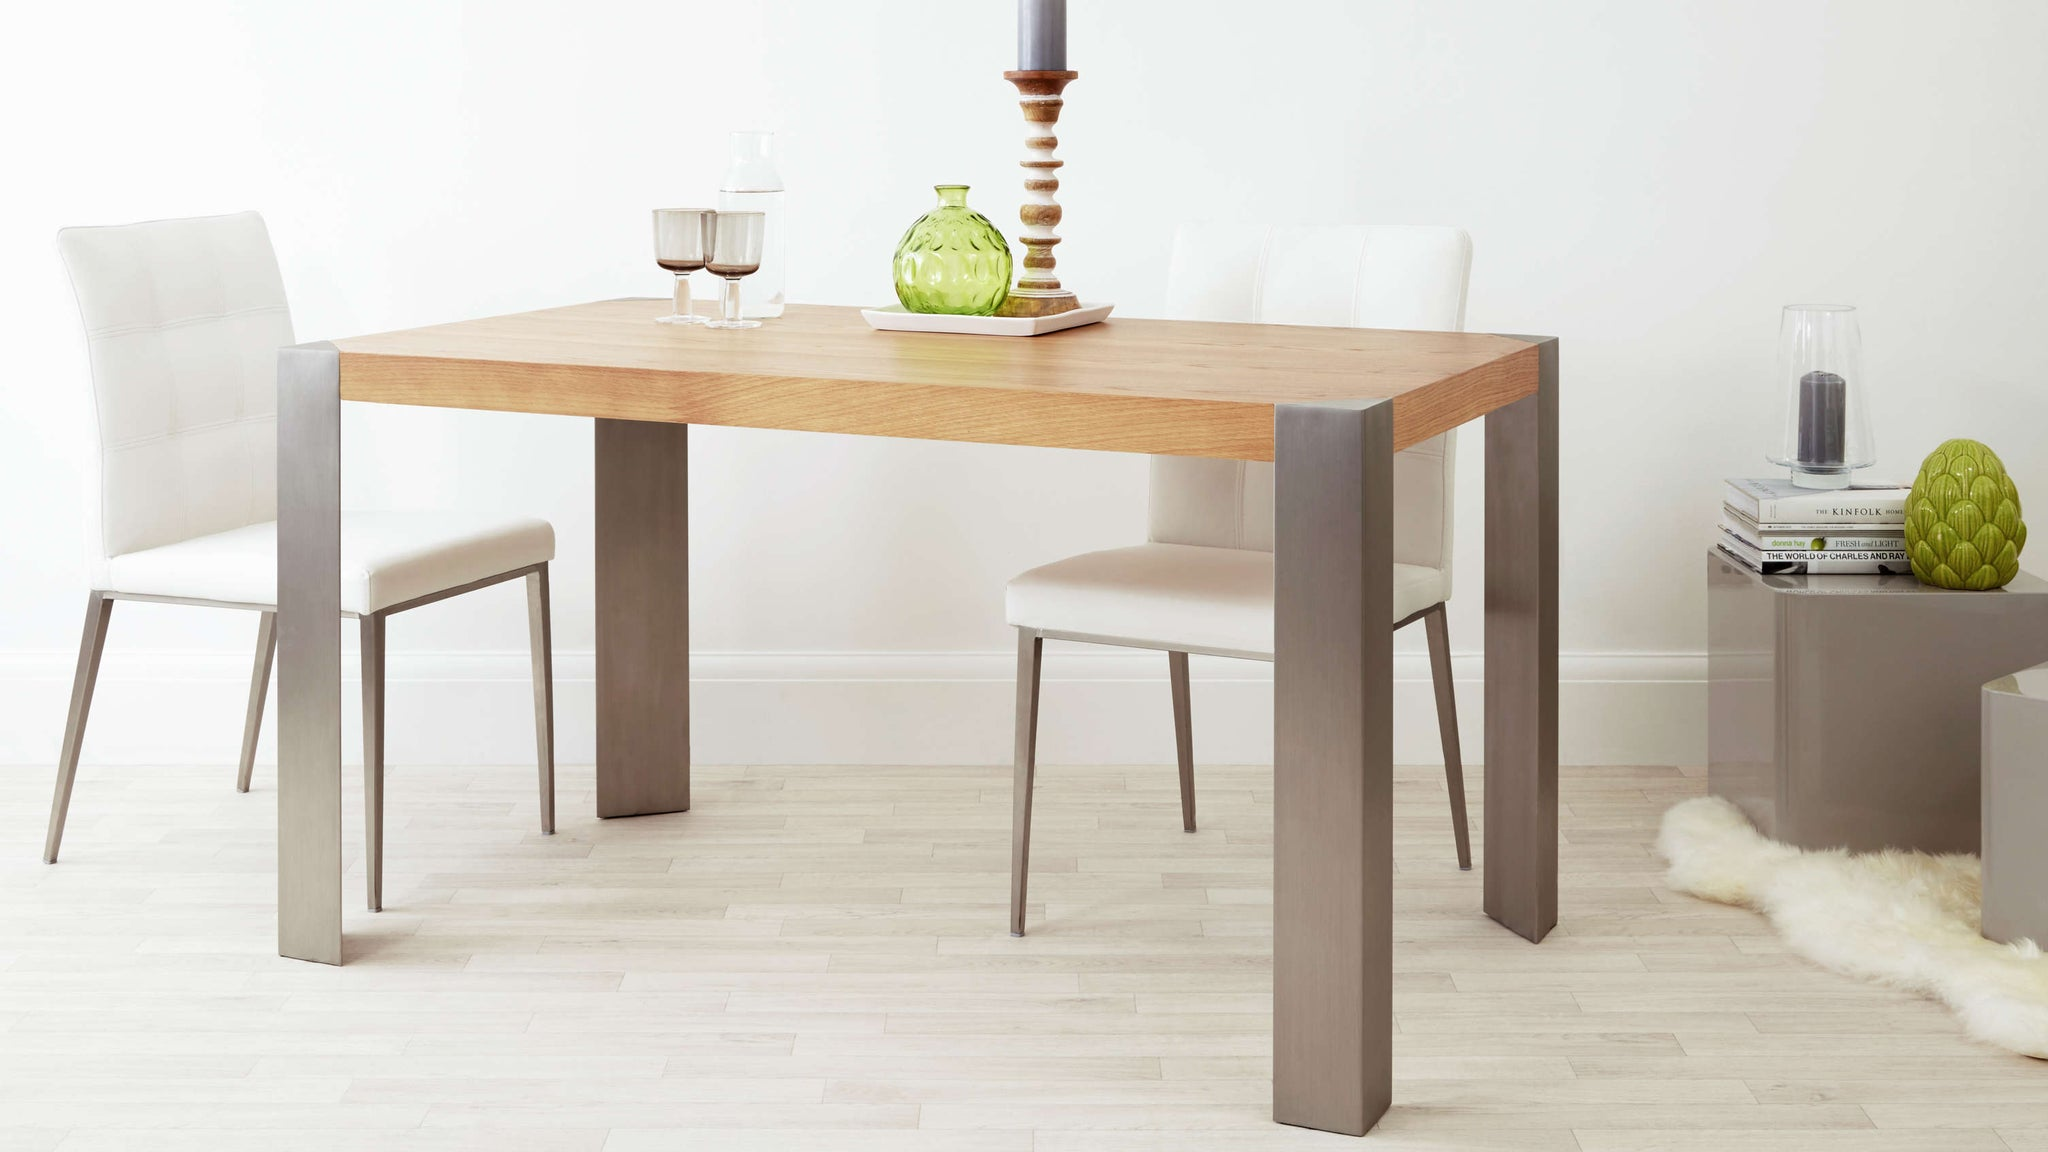 Stylish Oak Dining Table with Brushed Metal Legs